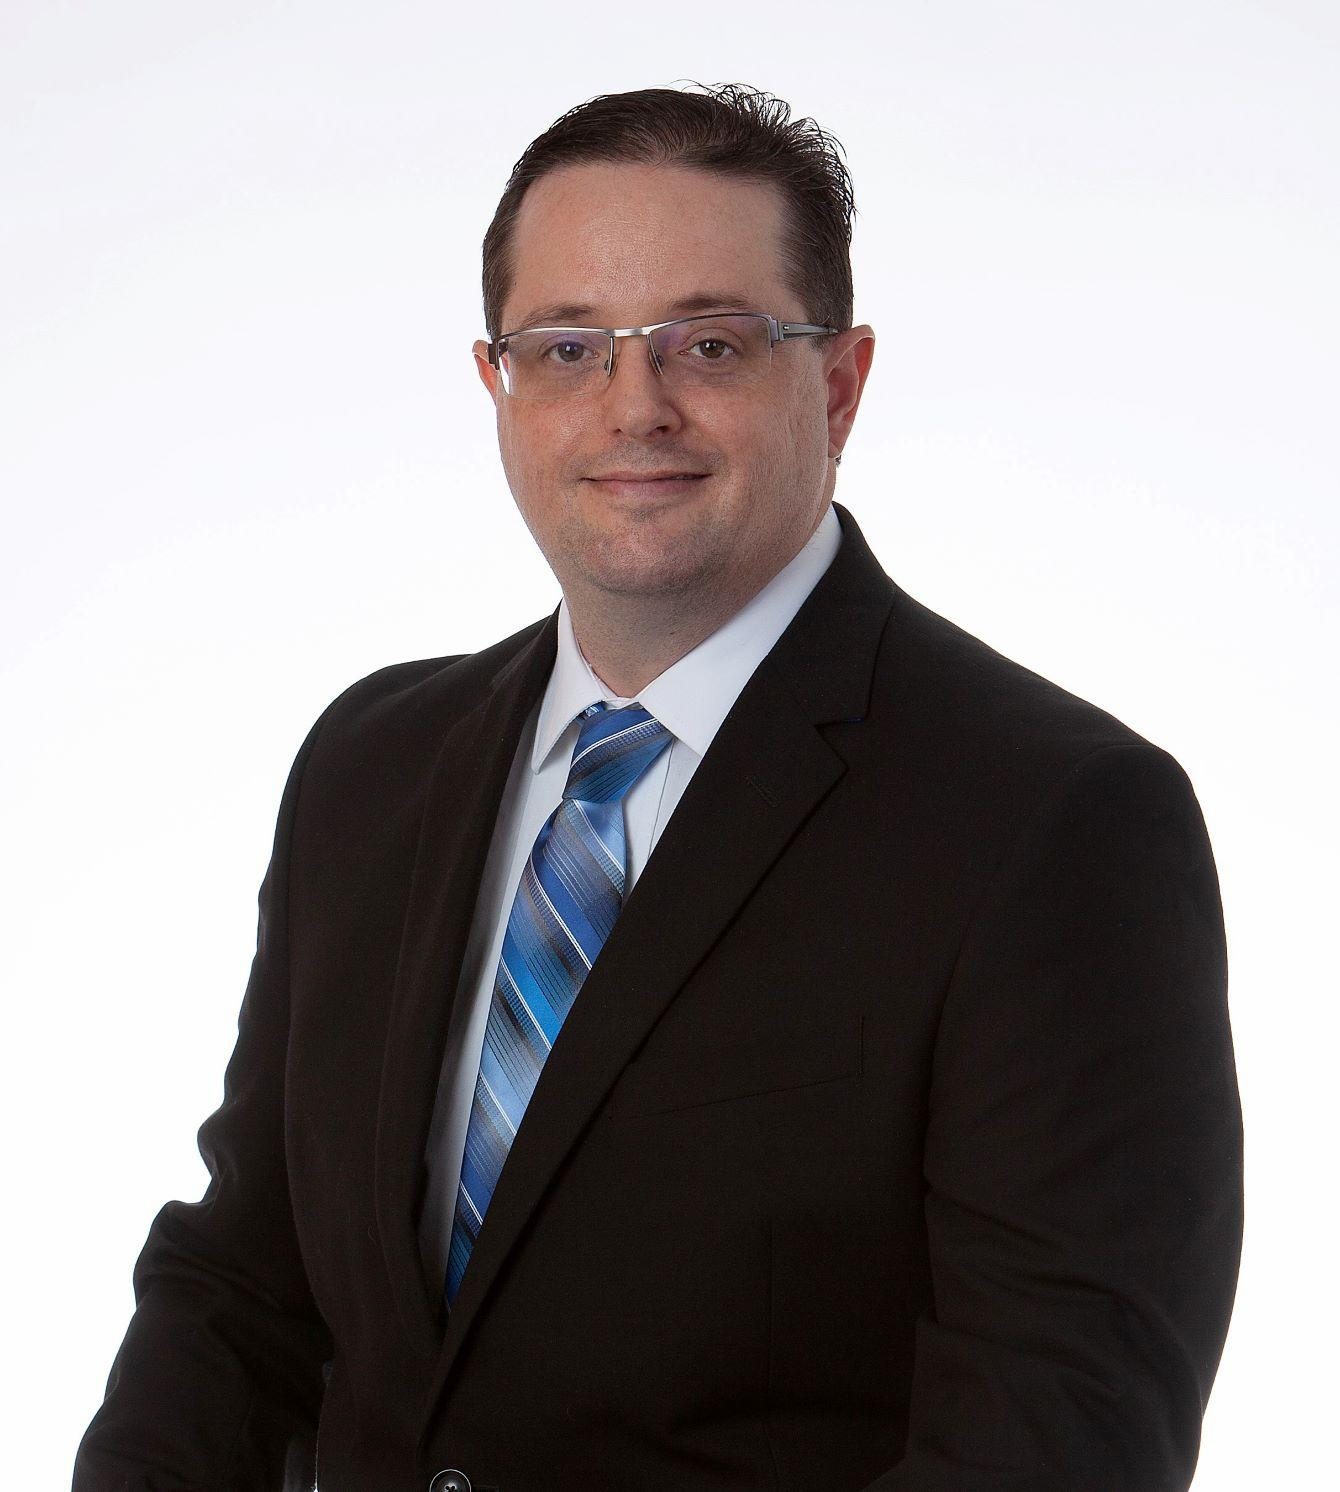 MICHAEL E. KREMER Financial Advisor